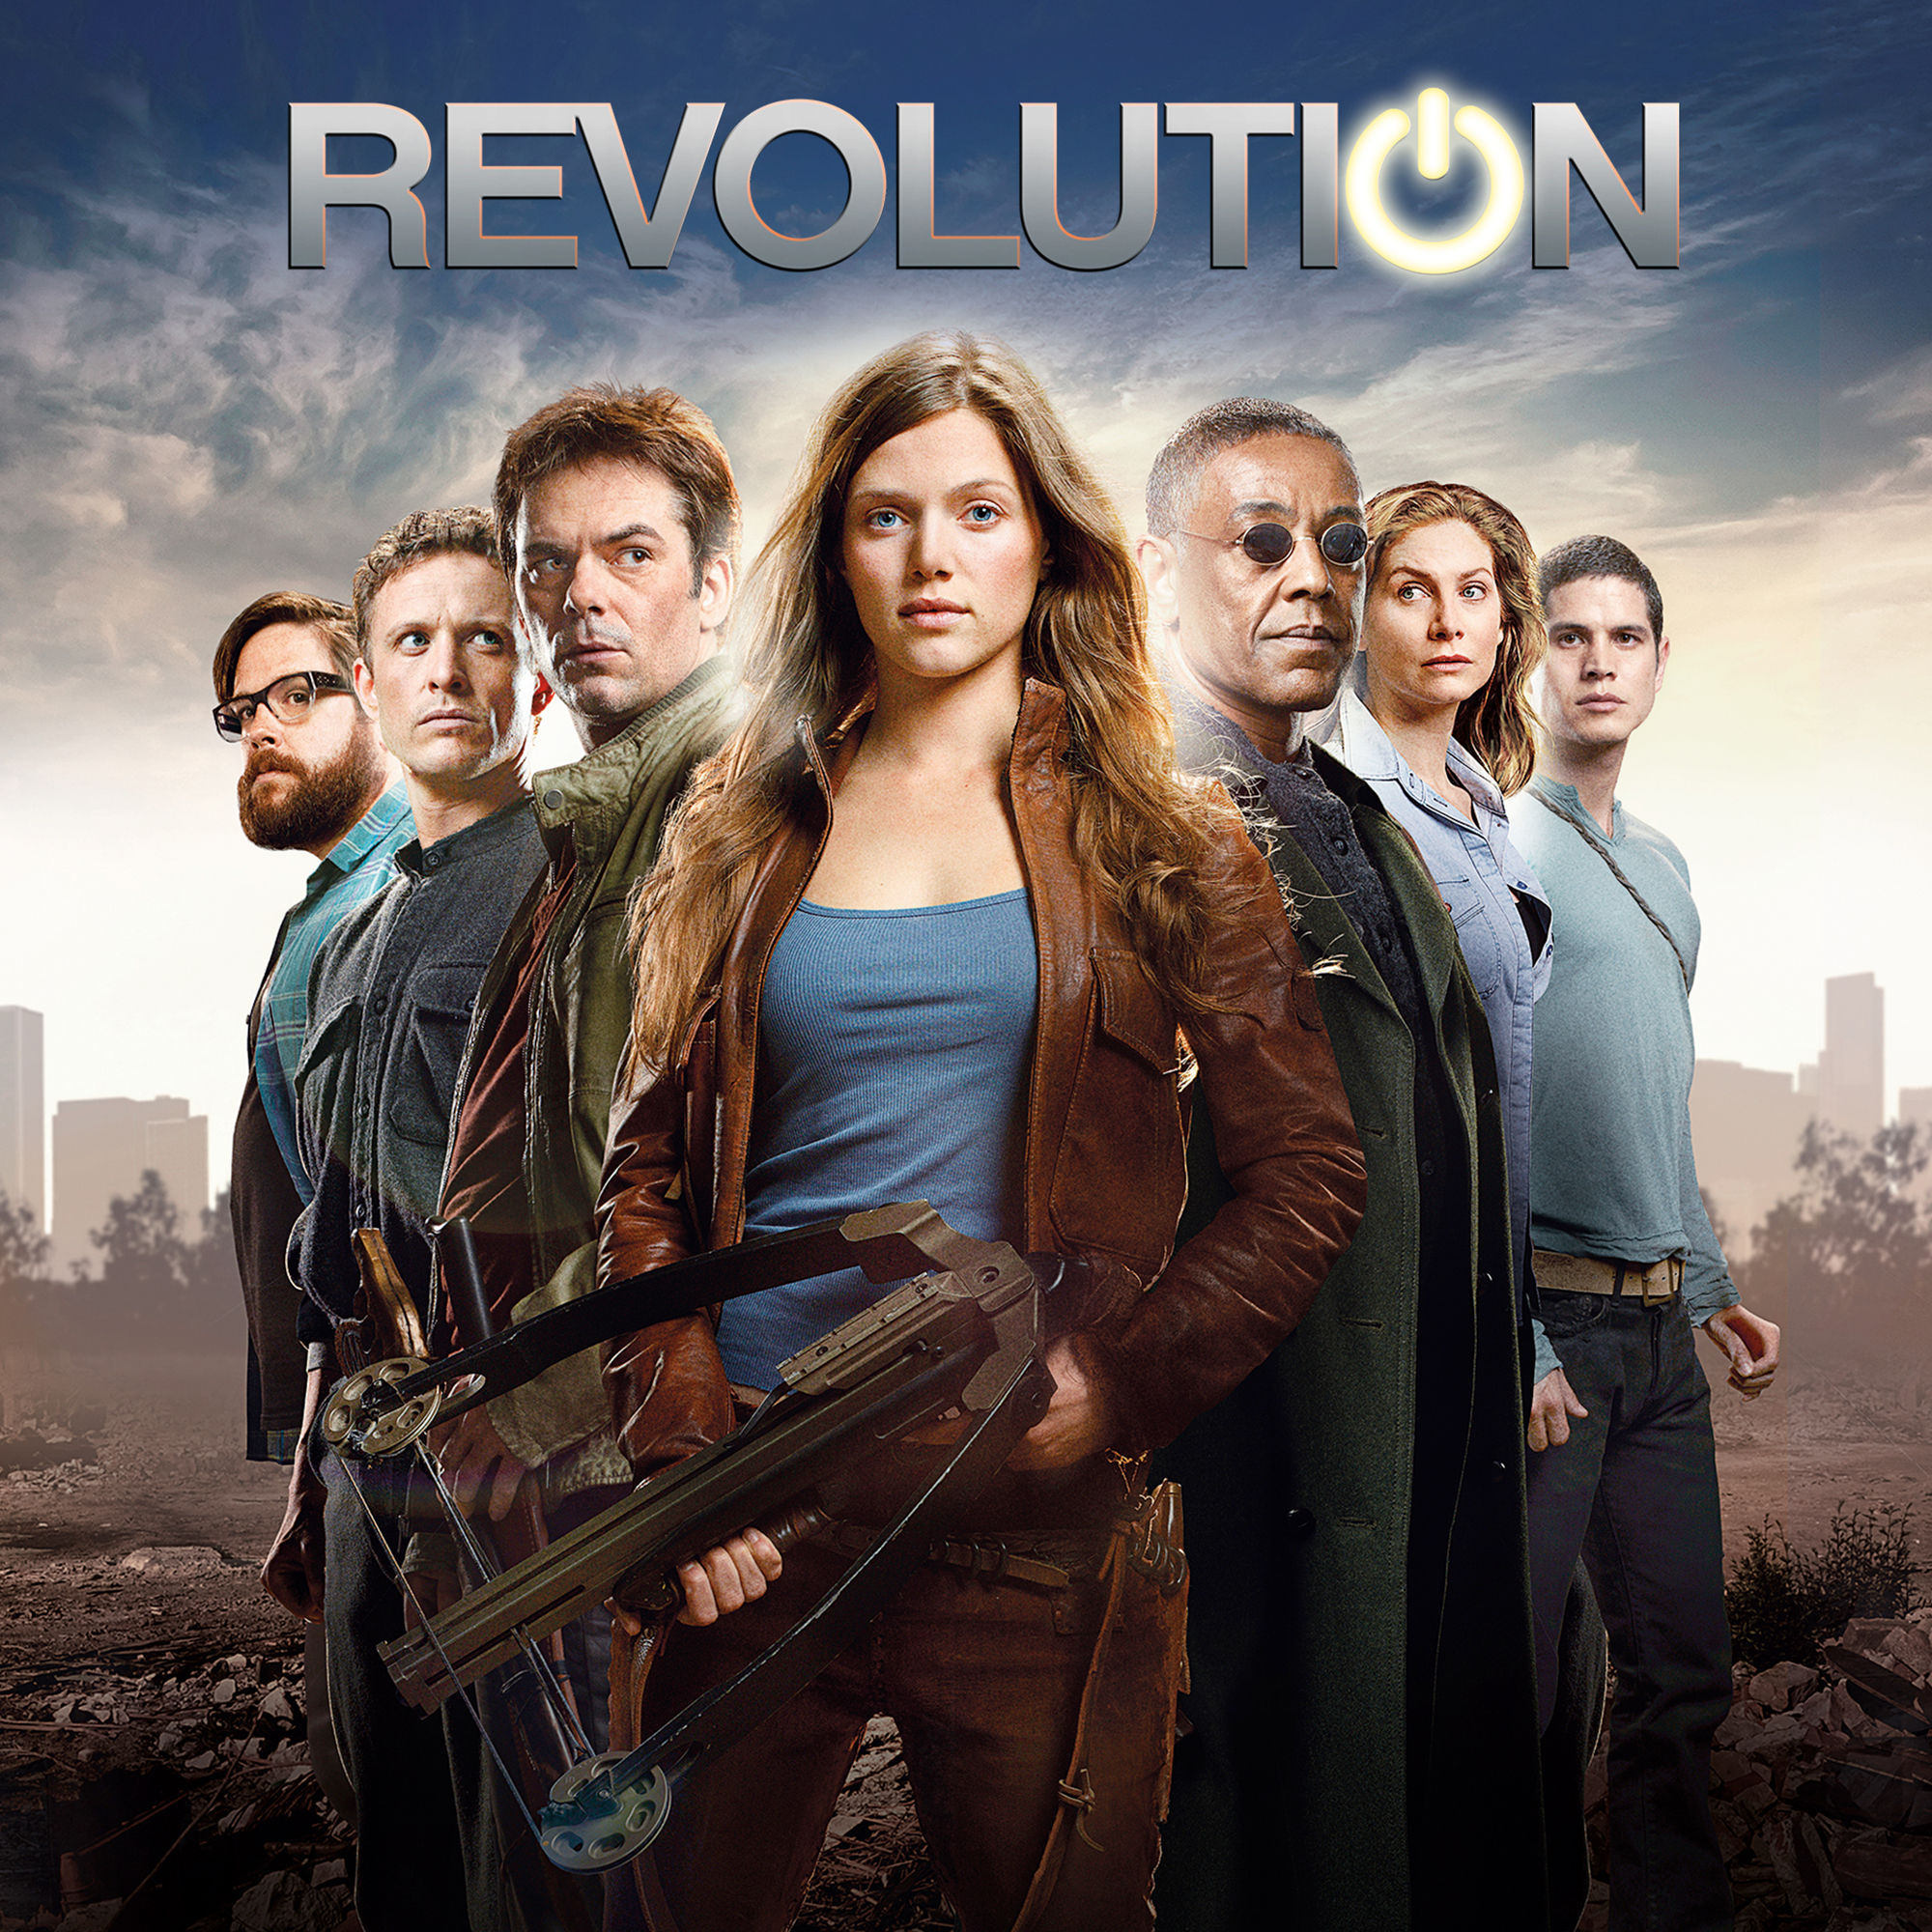 the television revolution Revolution comes from the minds of jj abrams and eric kripke it is an action adventure in which a family struggles to reunite in a post-apocalyptic american landscape.